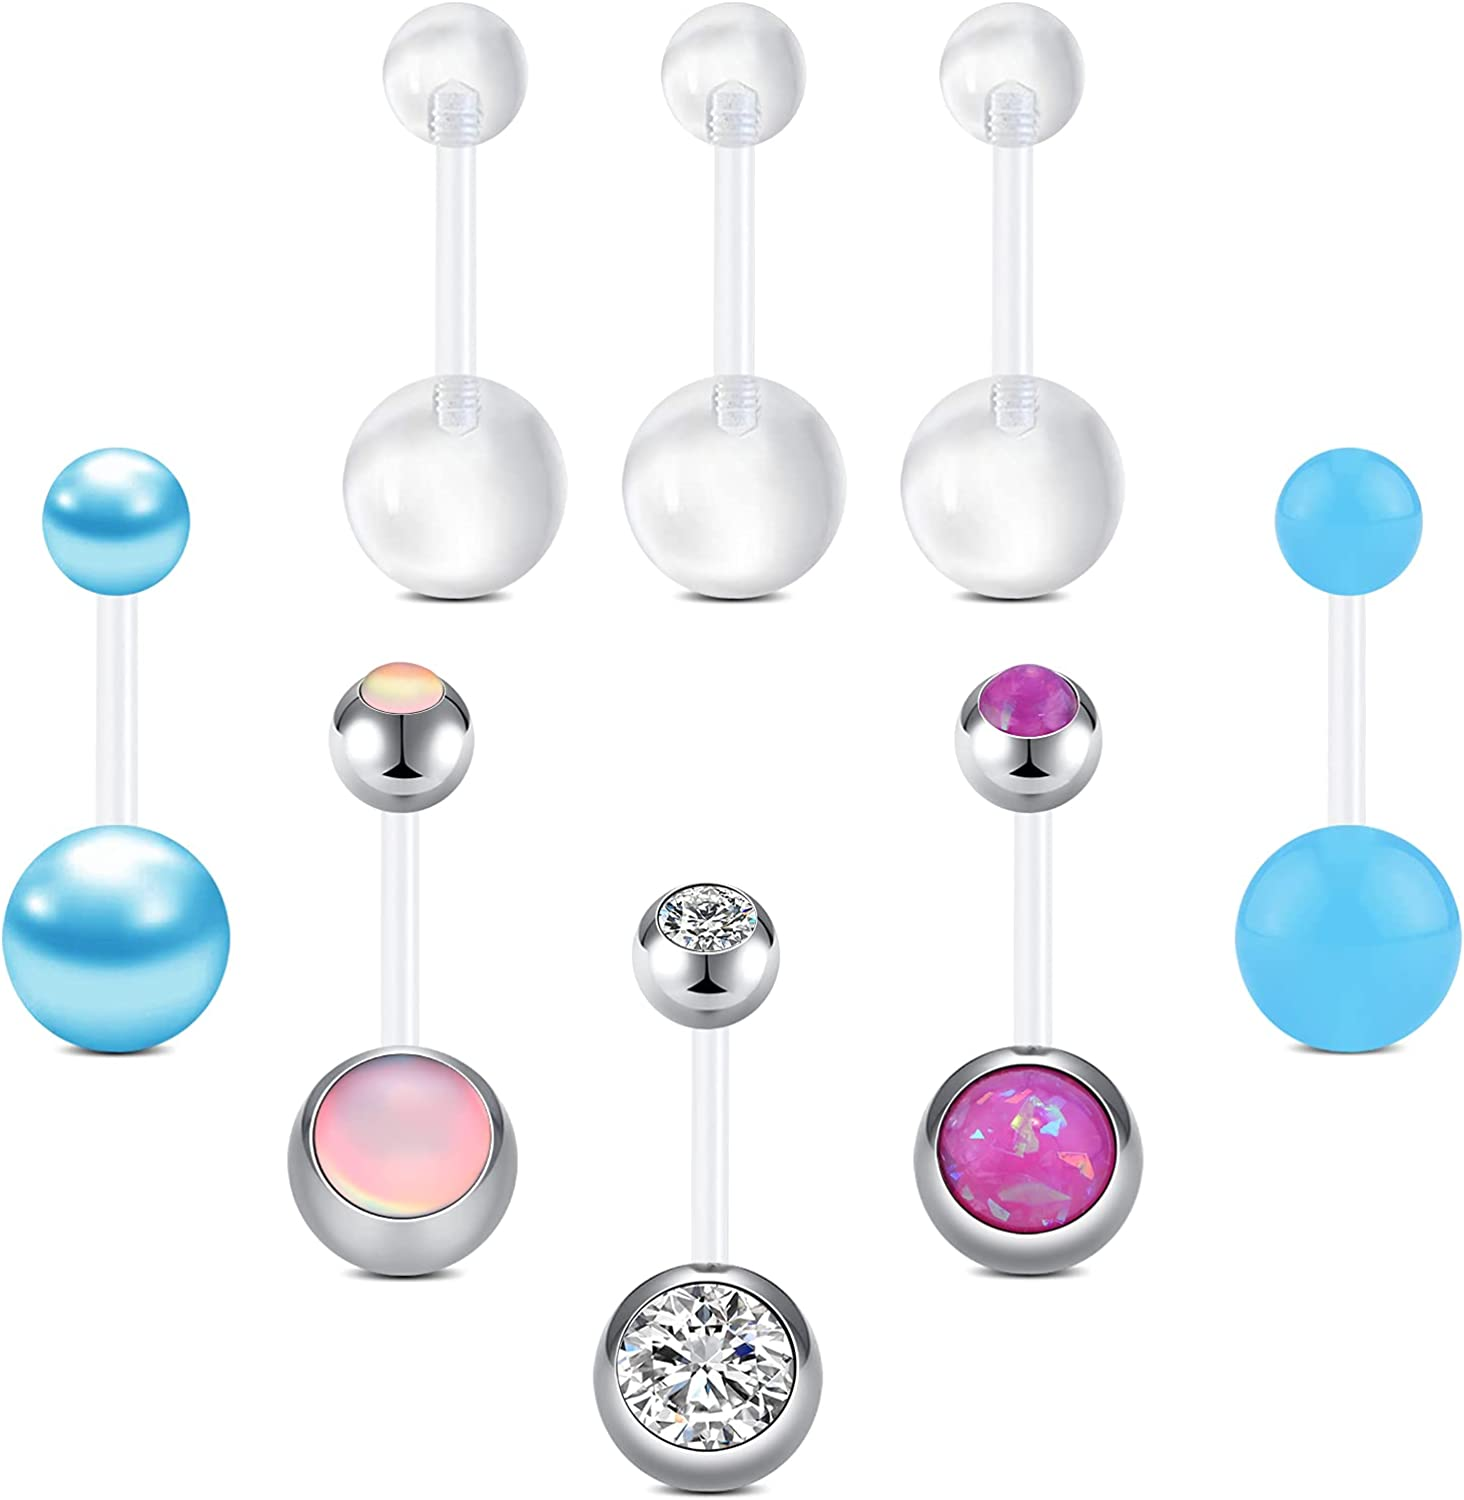 OFFicial store FECTAS Plastic Belly Button Rings Gifts Retainer for Navel Mater